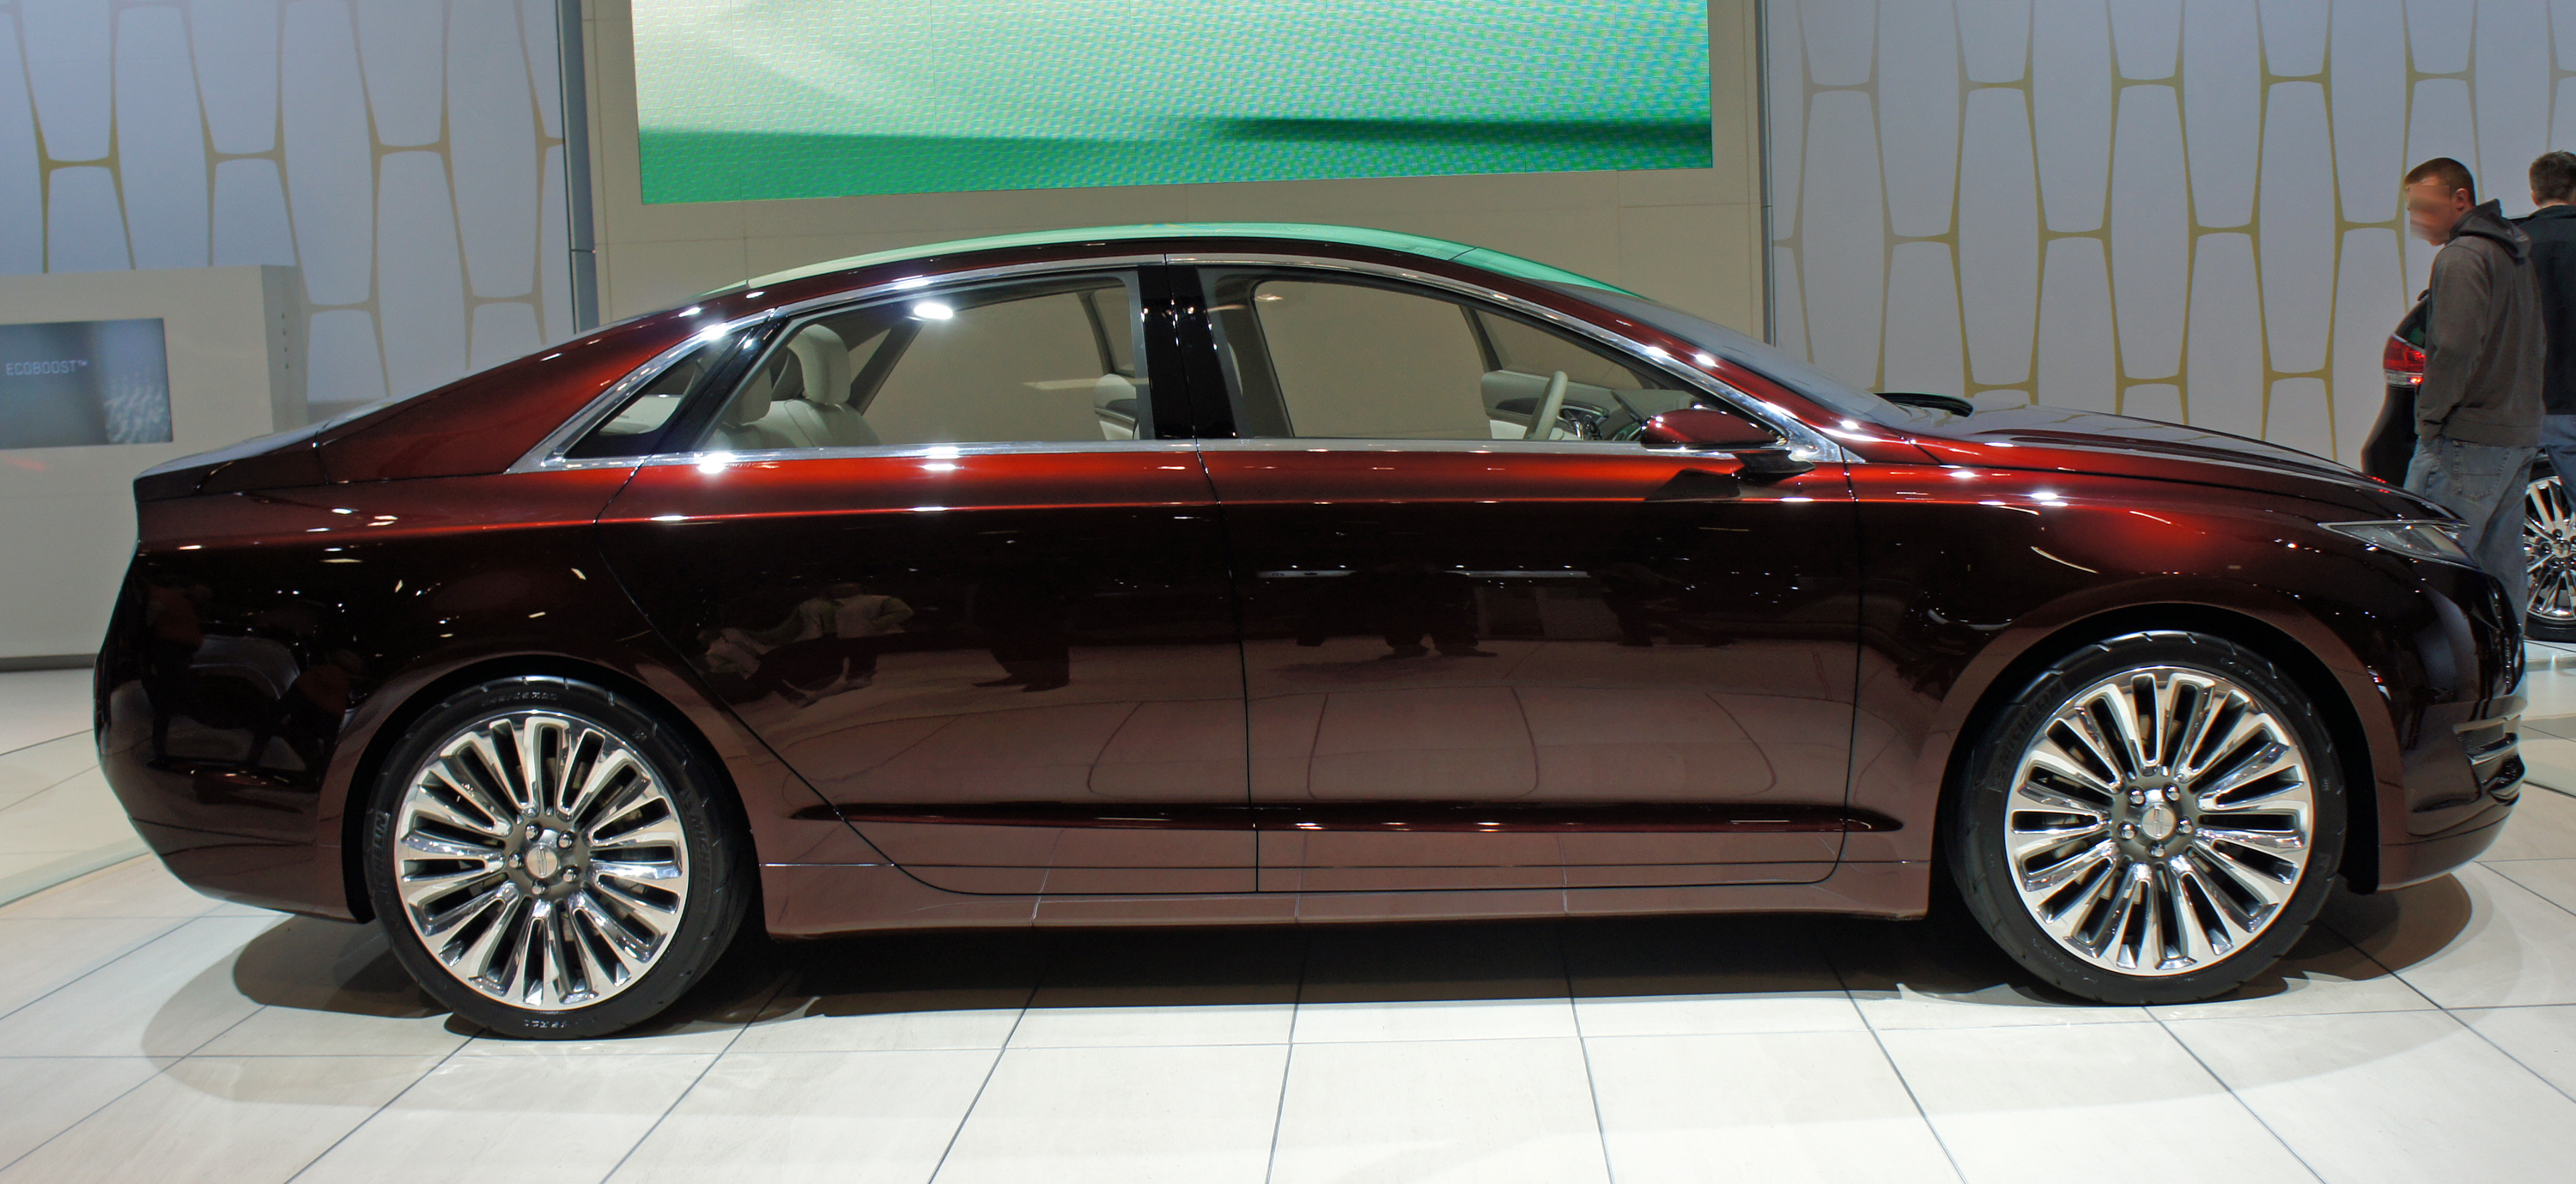 File:Lincoln MKZ concept WAS 2012 0509.JPG - Wikimedia Commons